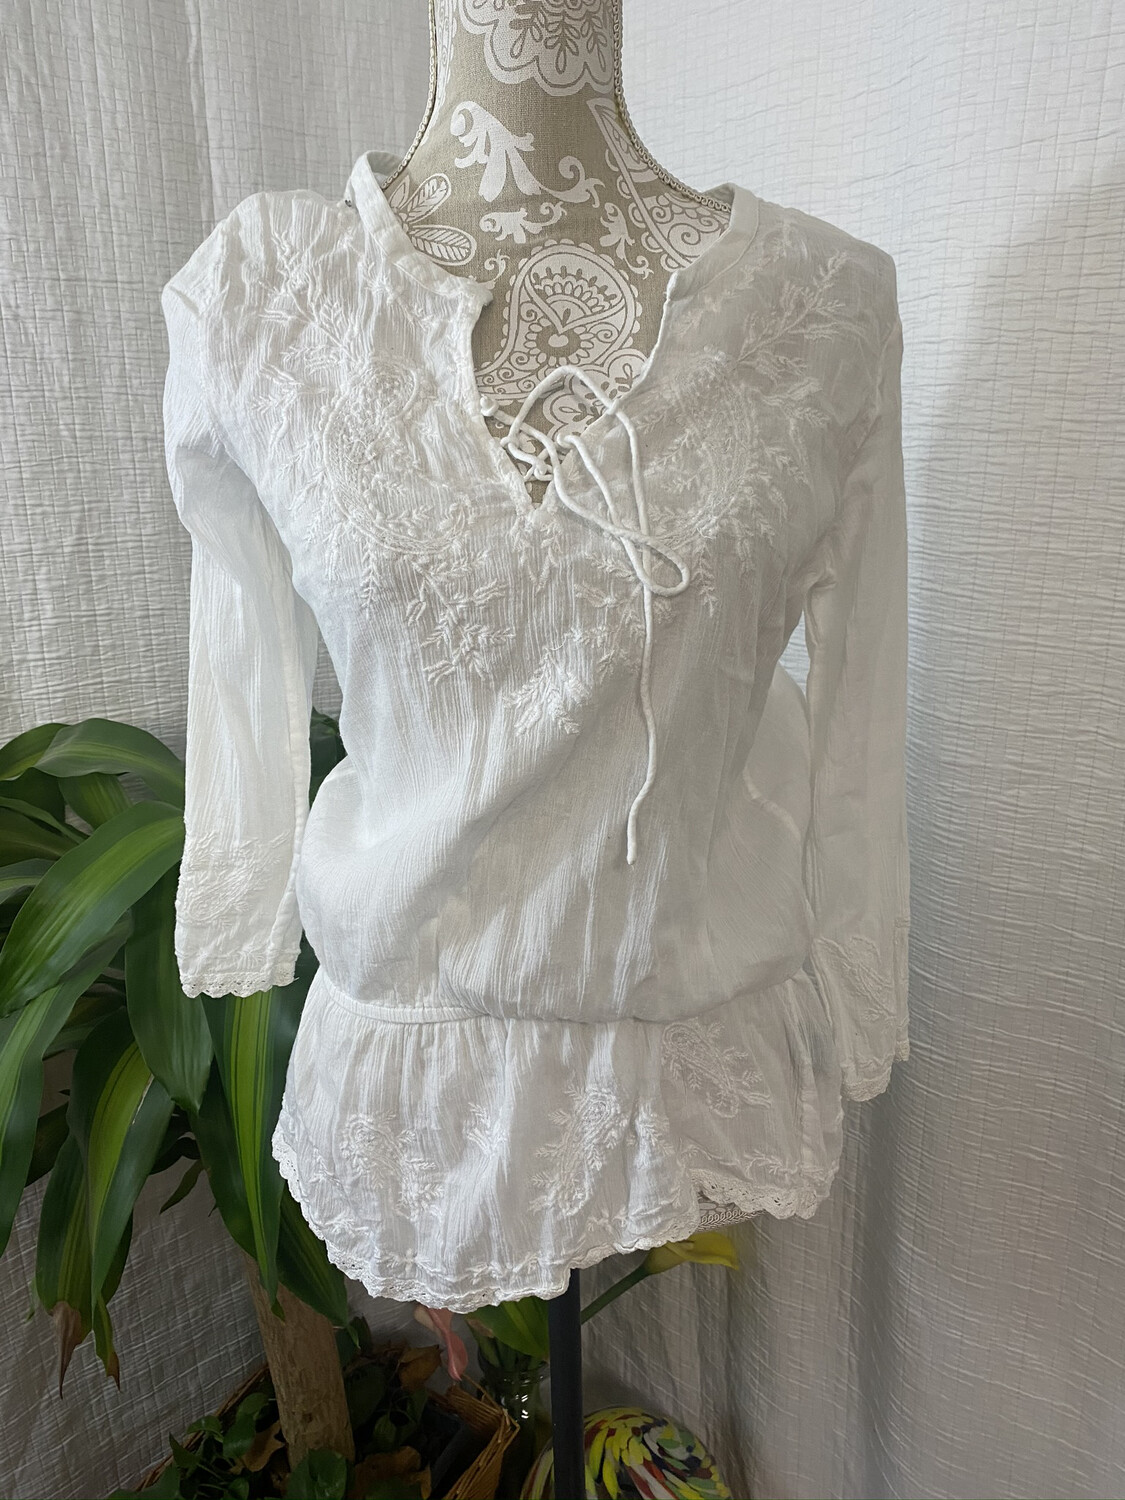 668 ralph lauren white embroidered long sleeve top womens size xs